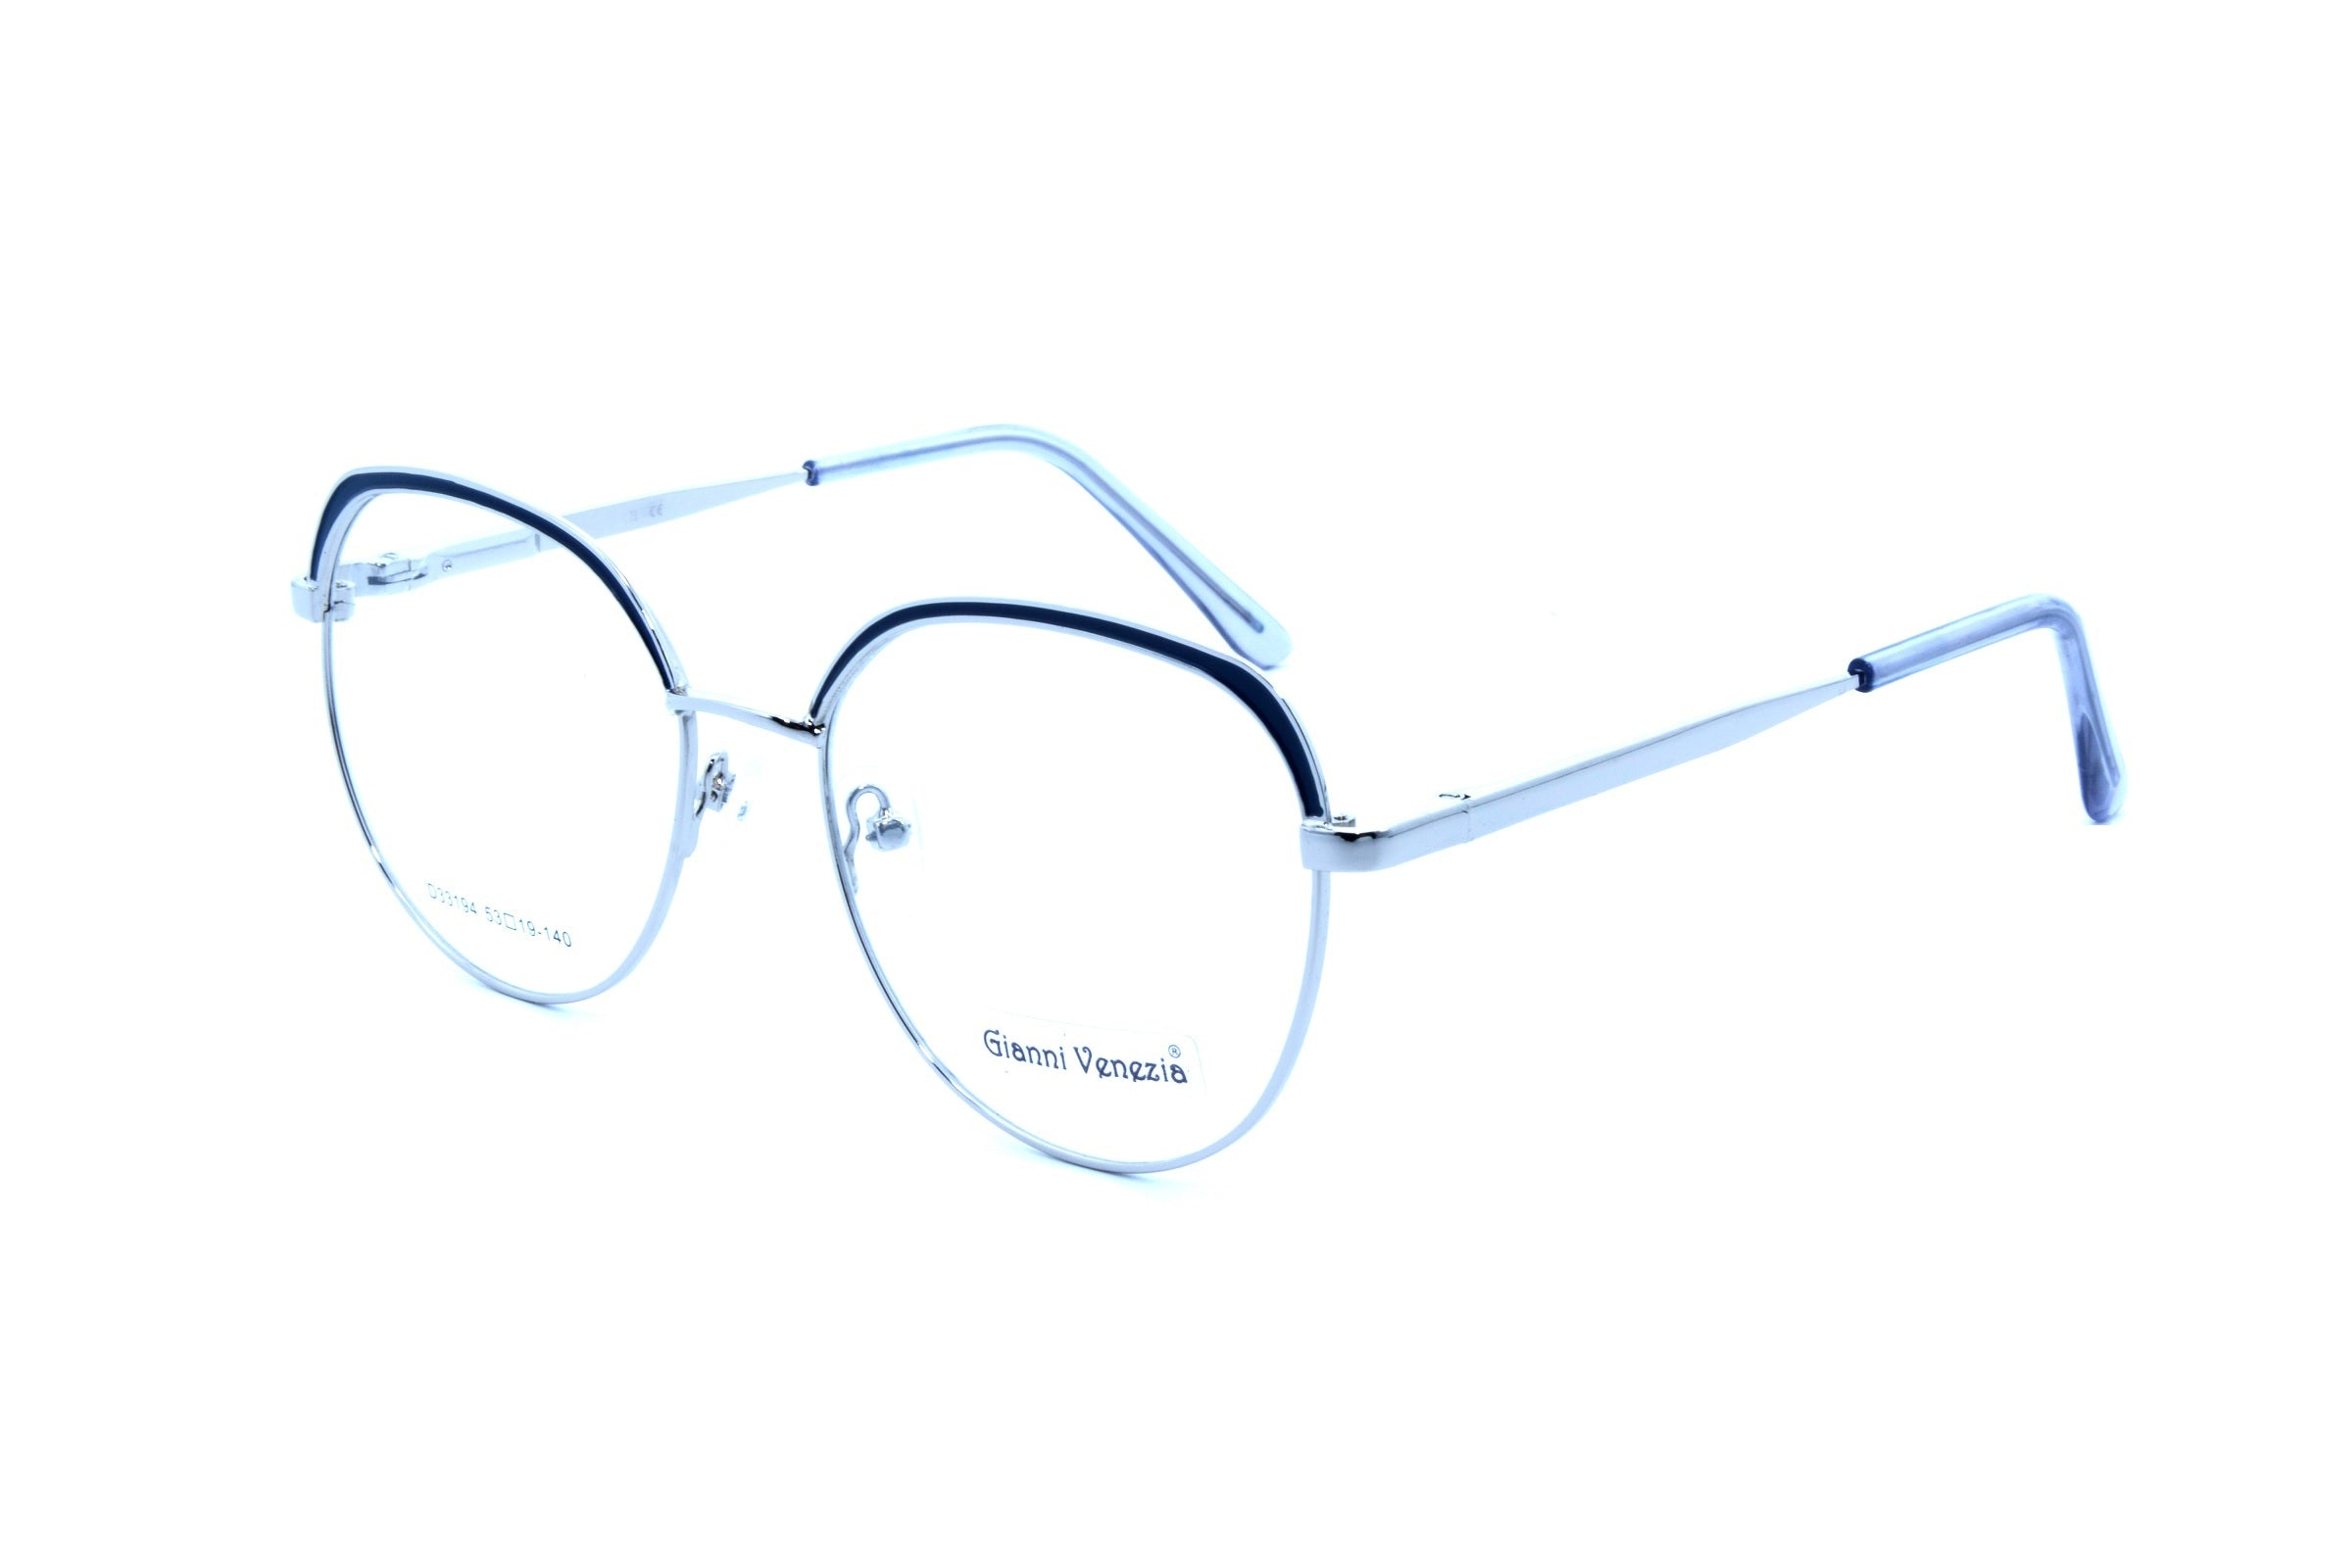 Gianni Vennezia eyewear 33194, C6 - Optics Trading